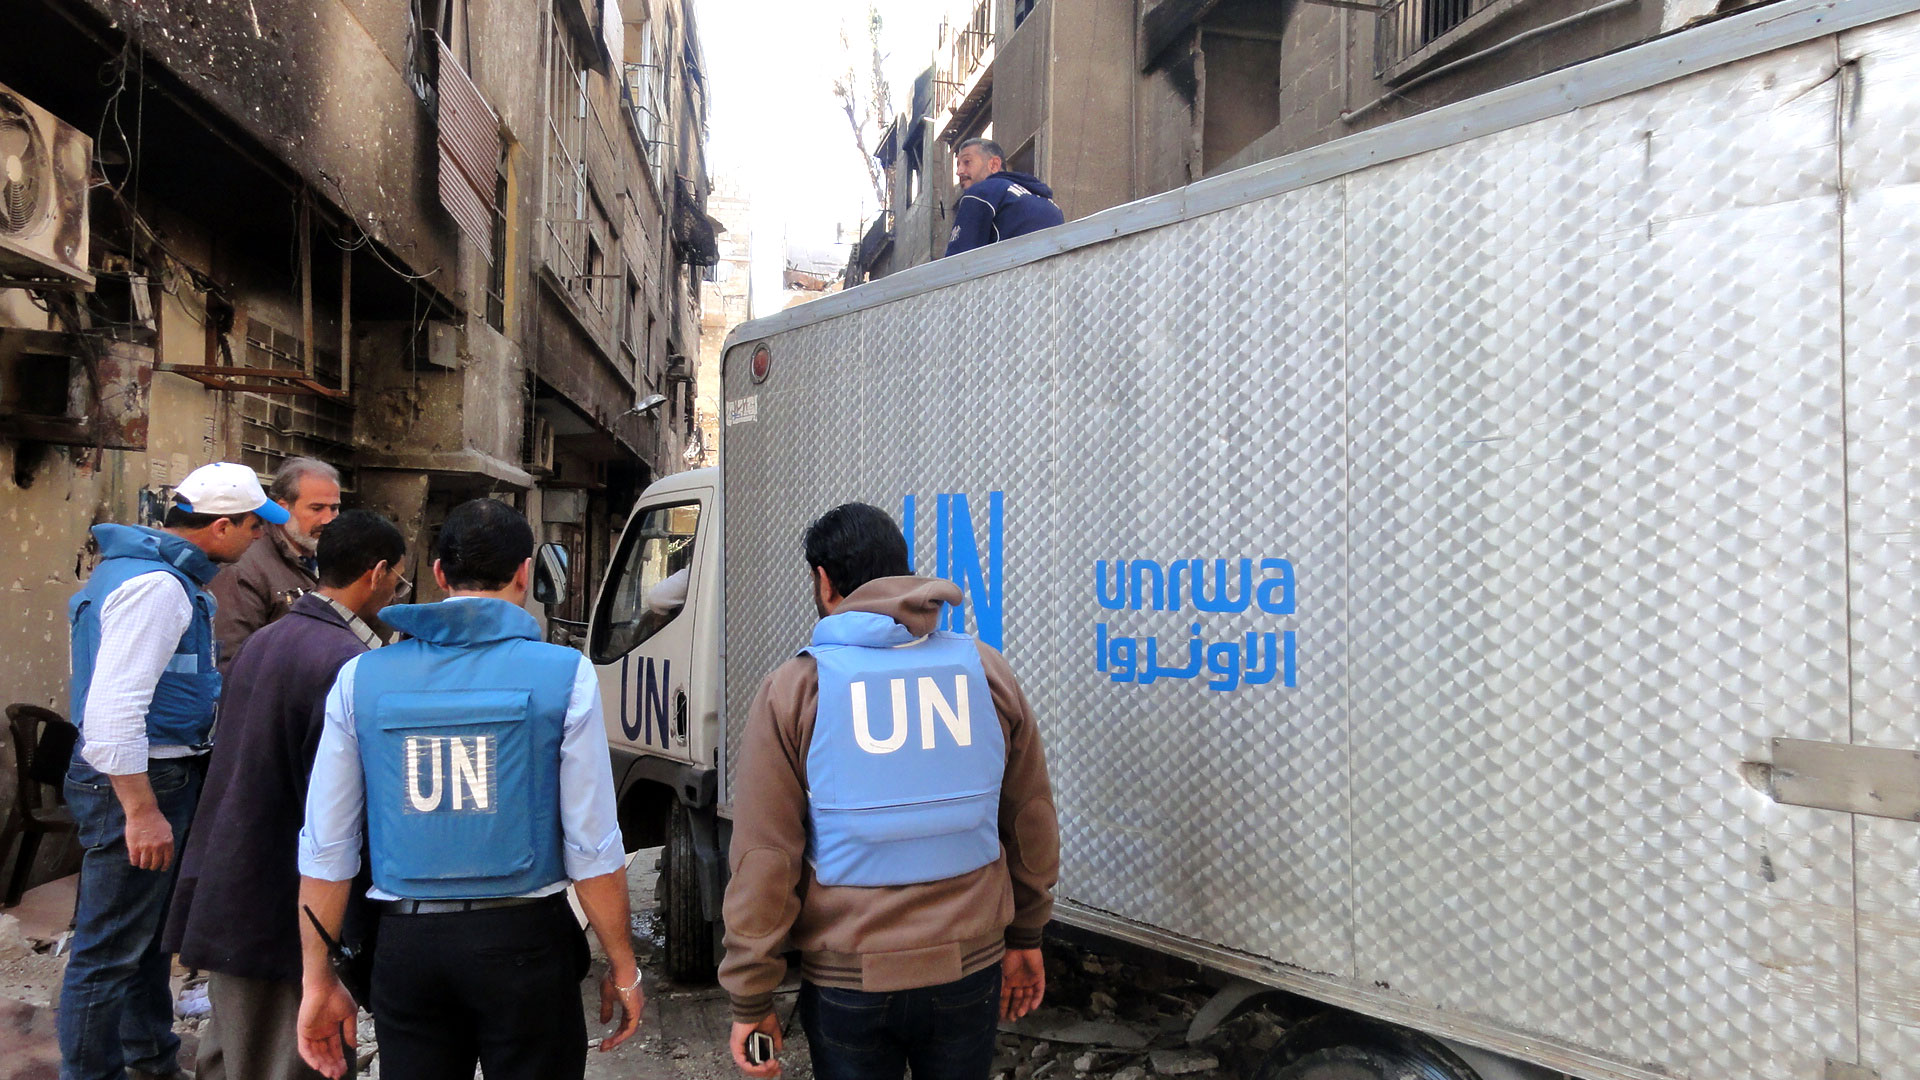 Guterres - The Hope of Justice for Palestinian Refugees, Guterres – The Hope of Justice for Palestinian Refugees